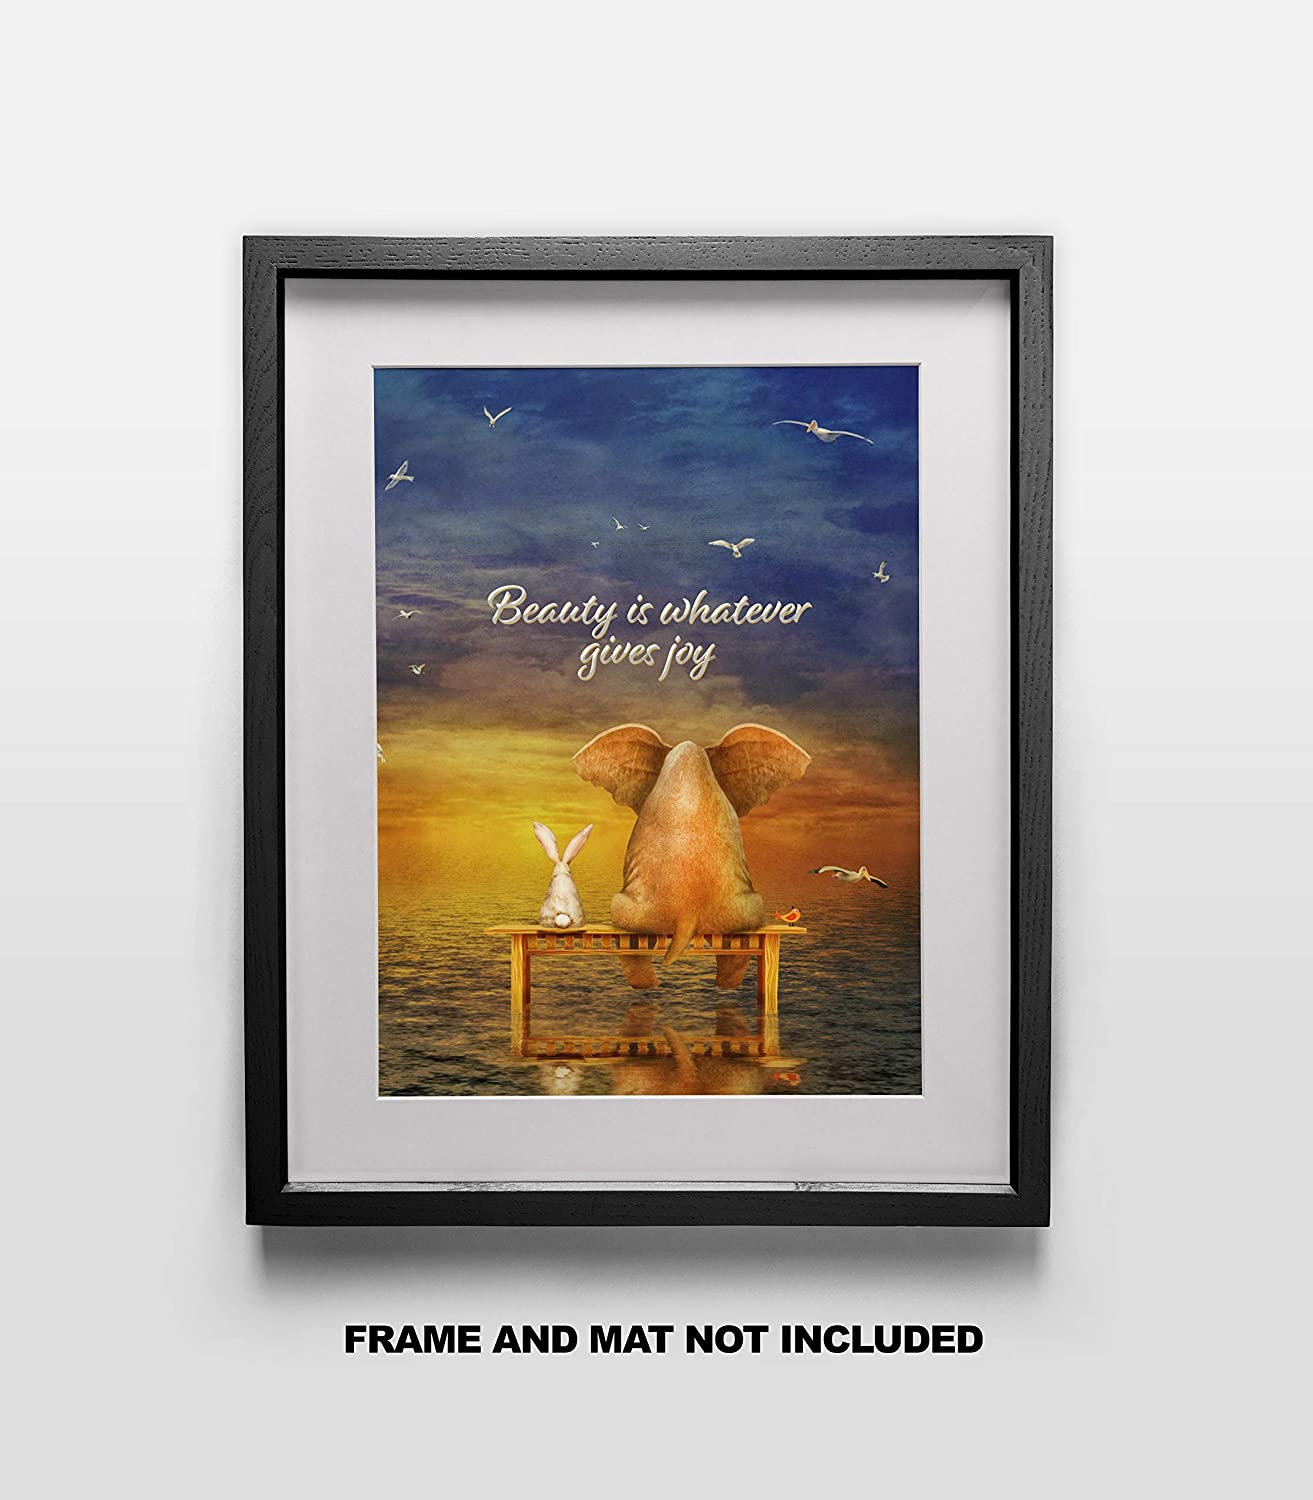 Nature Decor Poster 11x14 Unframed Photo Print Beauty is Whatever gives Joy Fine Art Print Quote Perfect Child Great Gift For Your Home or Bedroom Anniversary Gift Under $15 Dorm